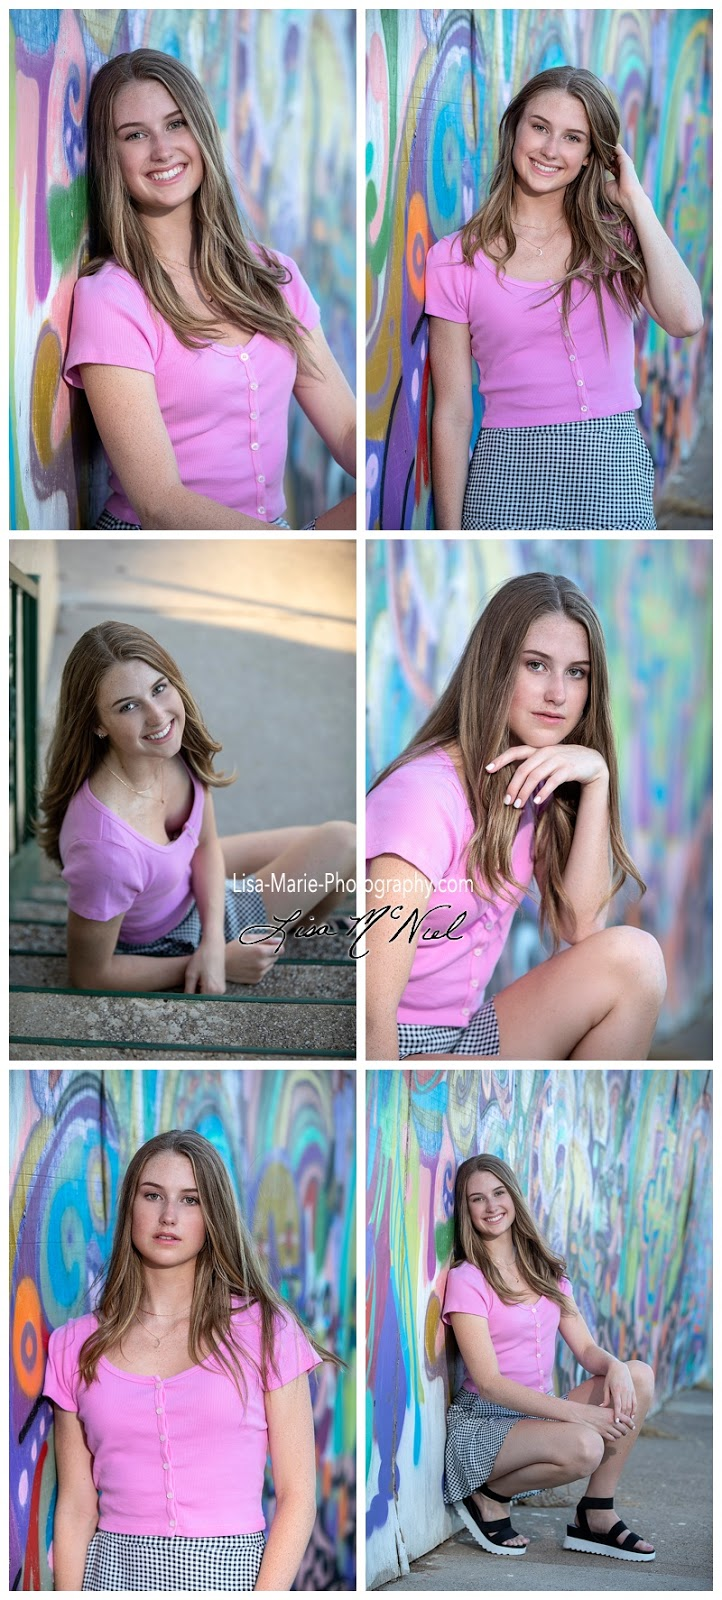 collage of girl posing by graffati wall